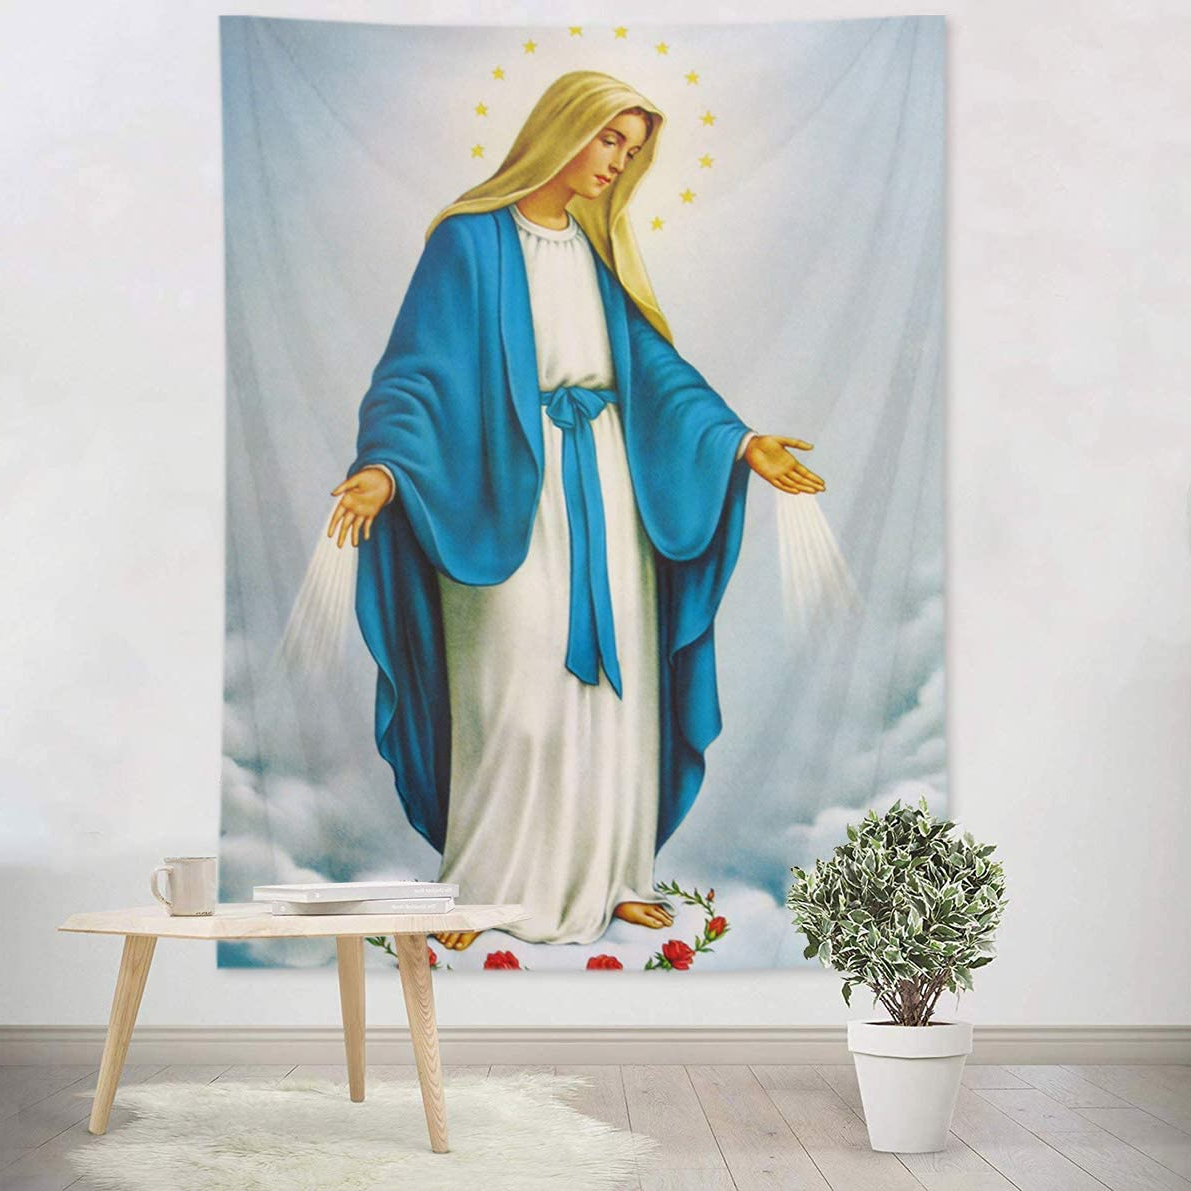 Hvest Blessed Virgin Mary Tapestry Mother Of God Tapestry Wall Hanging Christian Wall Art Decorations Jesus Christ Wall Tapestry Holy Mary Backdrop Within Current Blended Fabric Blessings Of Christmas Tapestries (View 8 of 20)